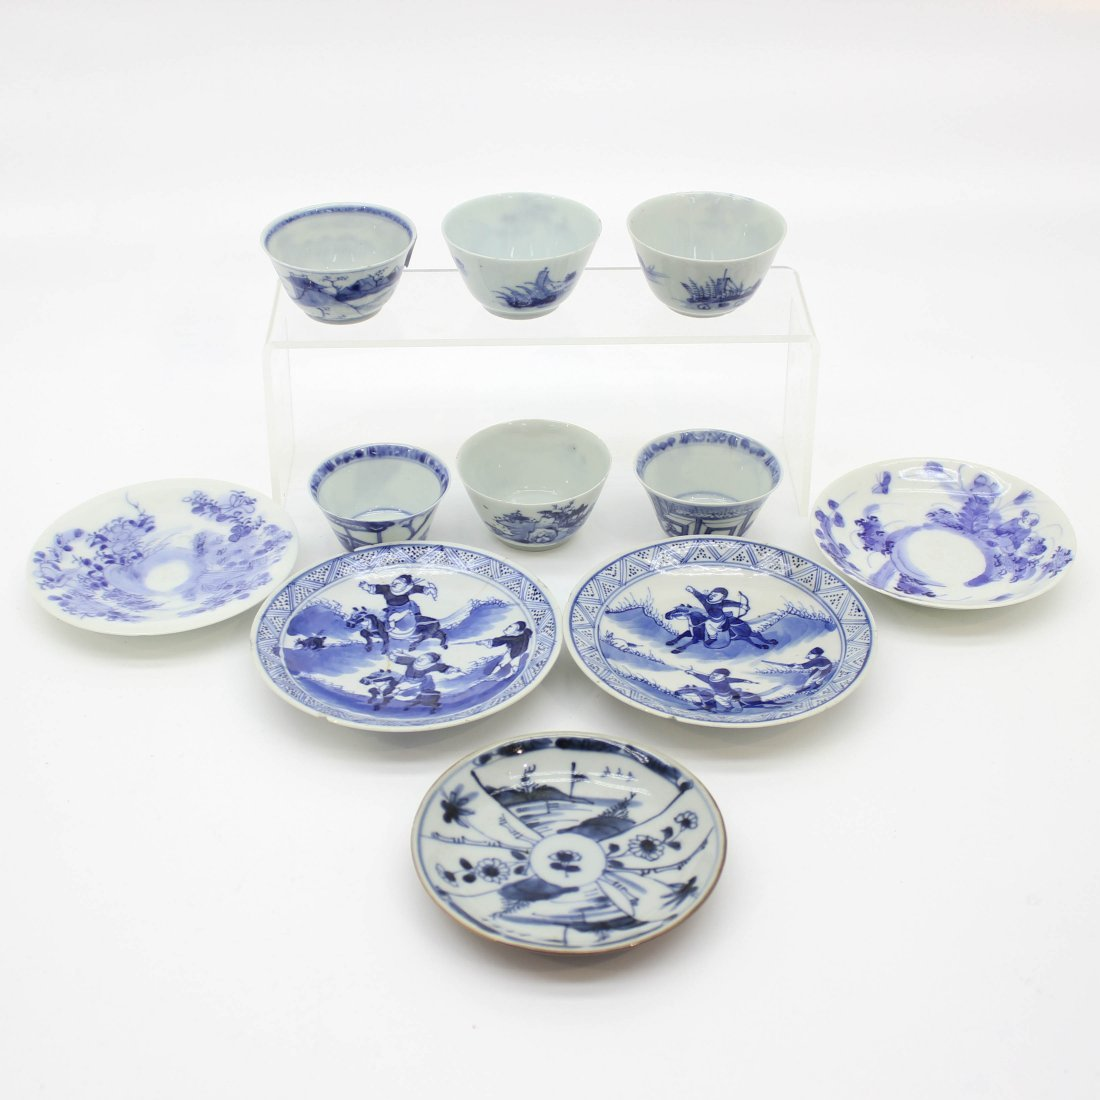 18th / 19th Century Lot of Diverse China Porcelain